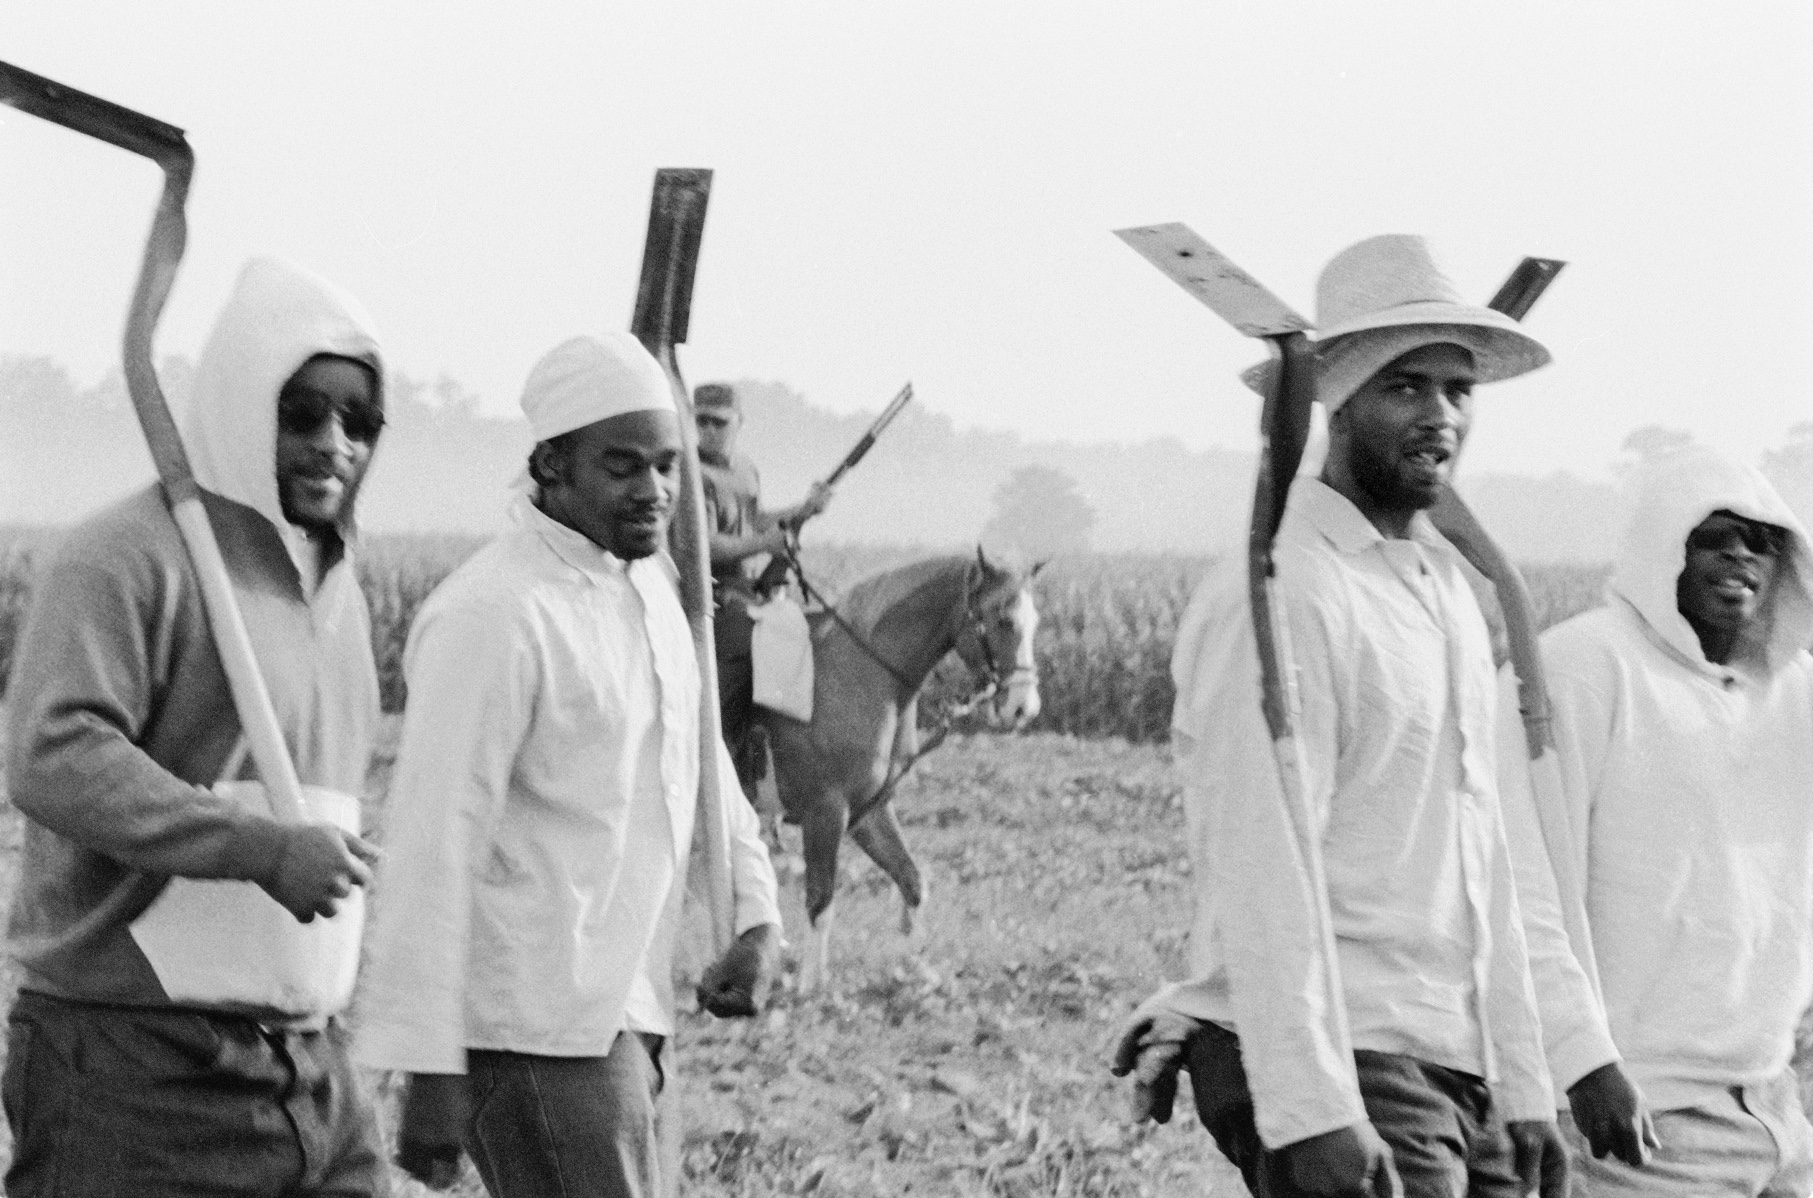 Chandra McCormick. MEN GOING TO WORK IN THE FIELDS OF ANGOLA, 2004.